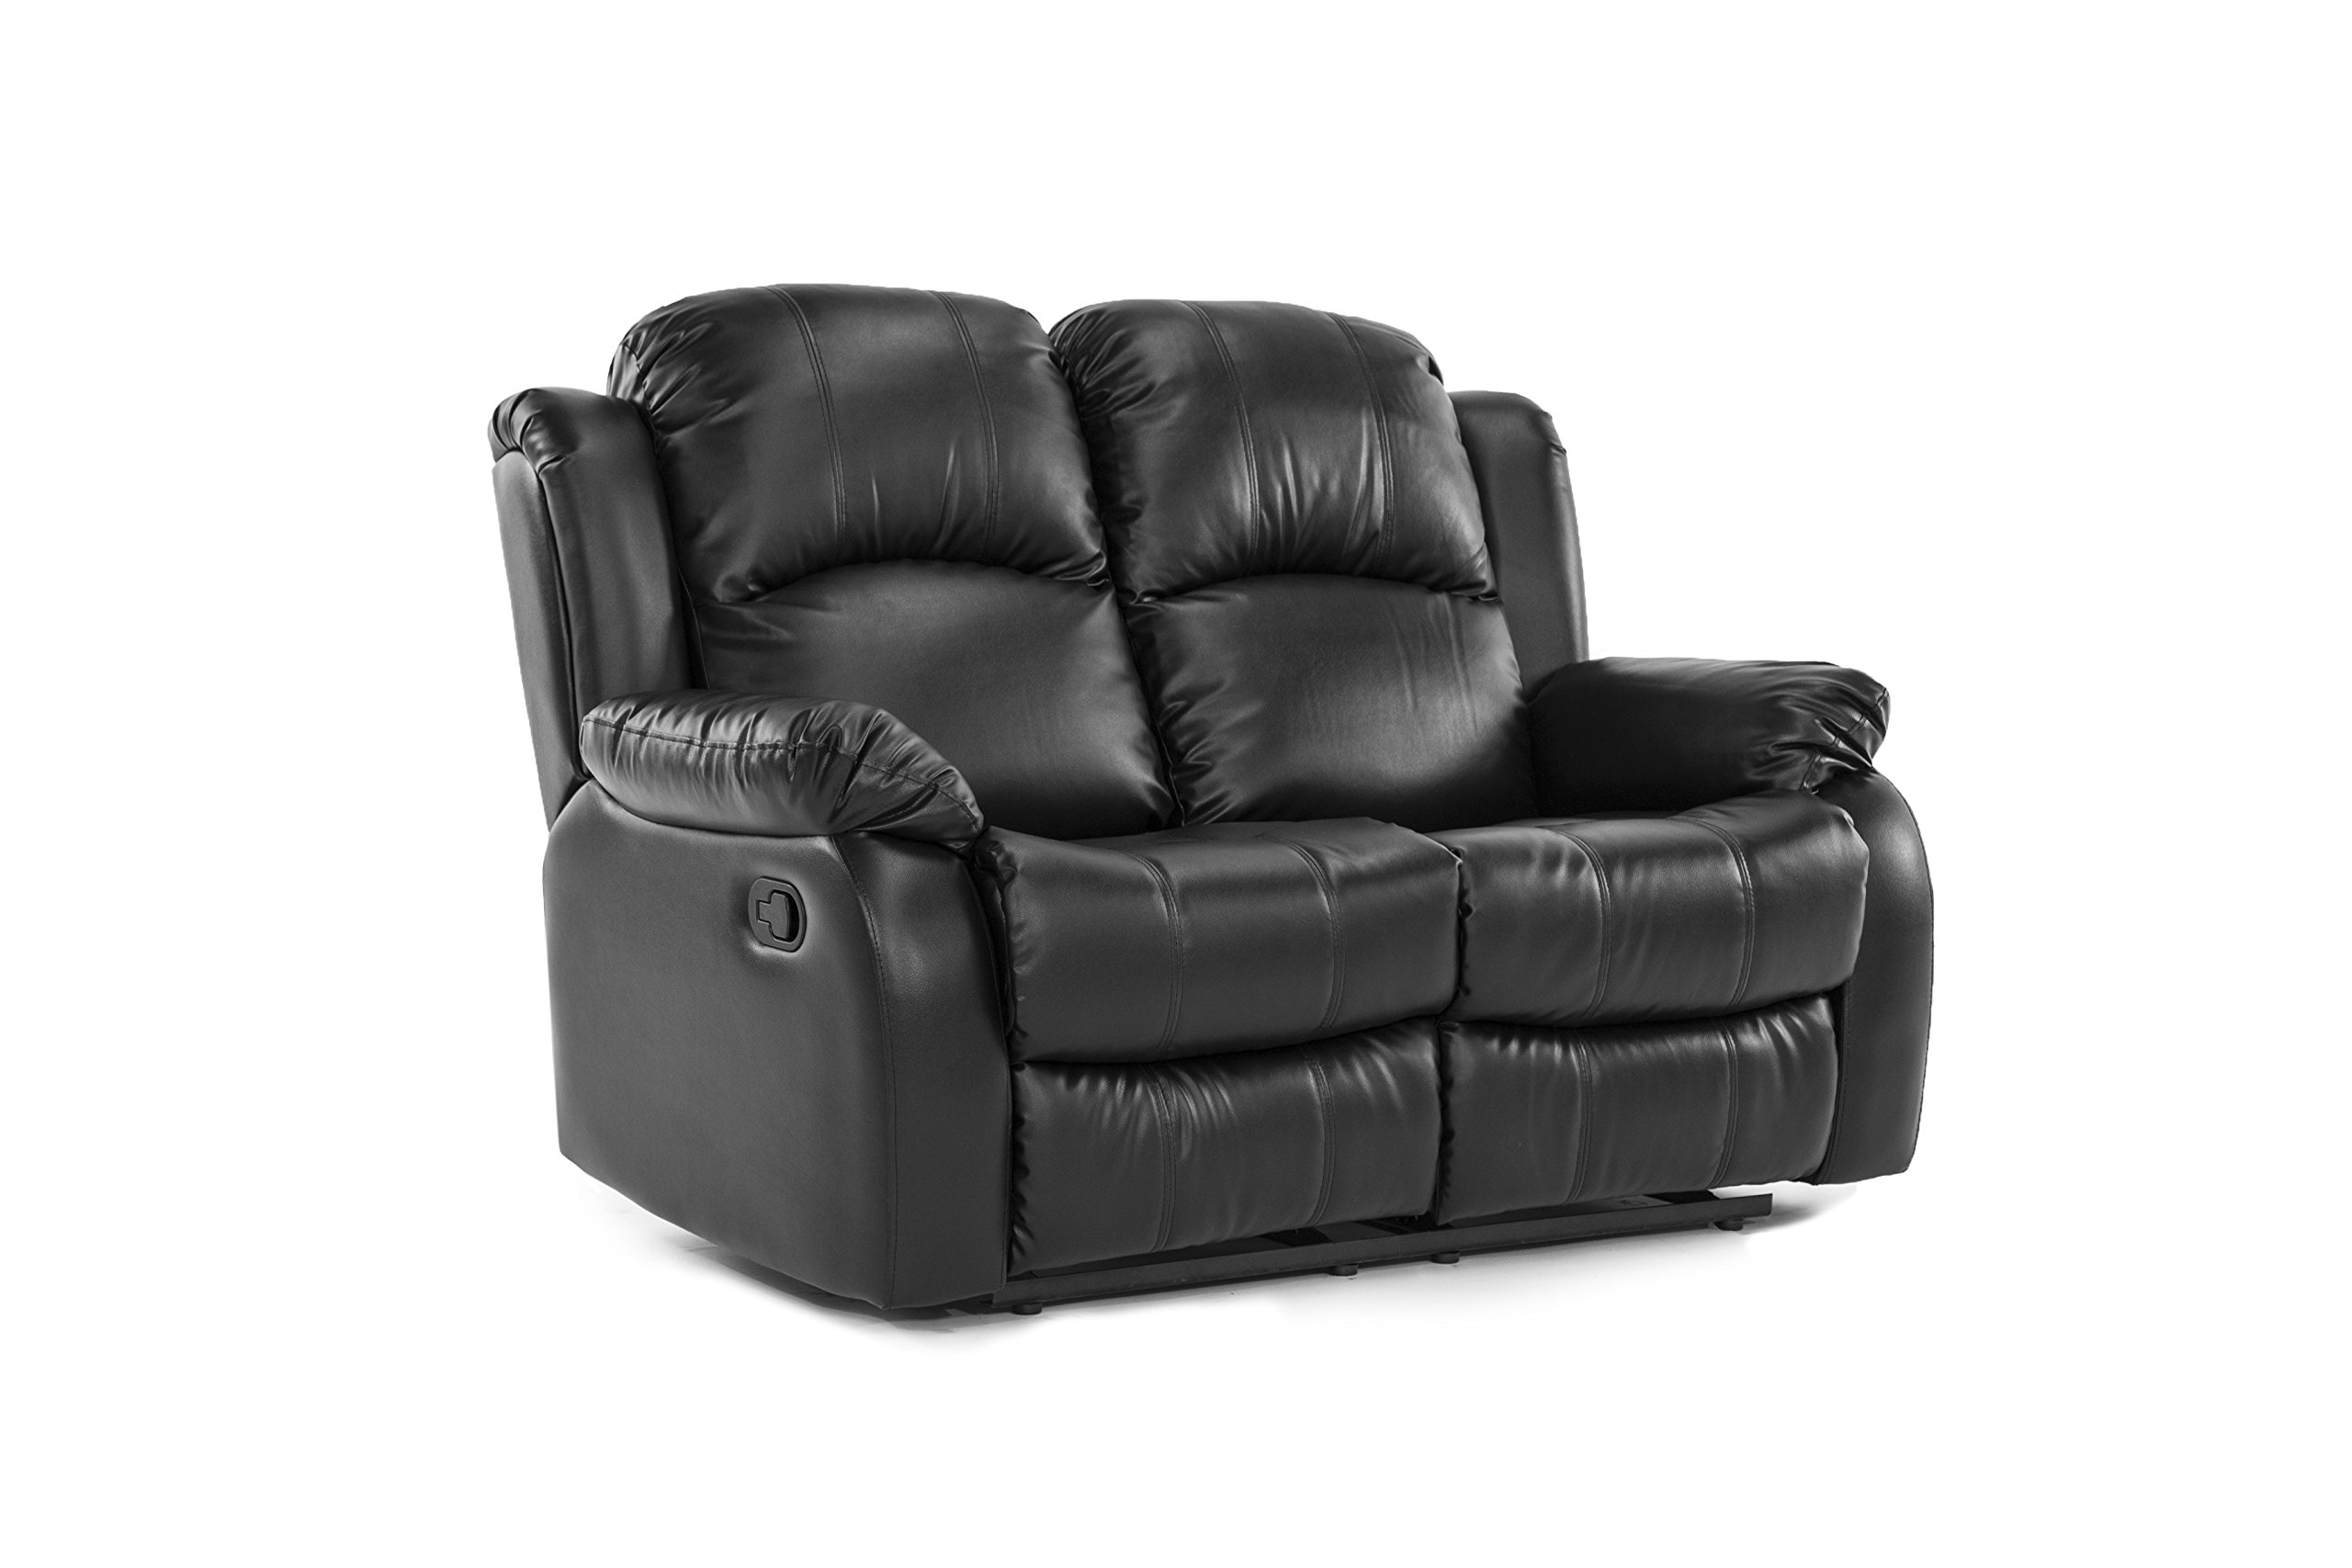 Classic Double Reclining Loveseat - Bonded Leather Living Room Recliner (Black)